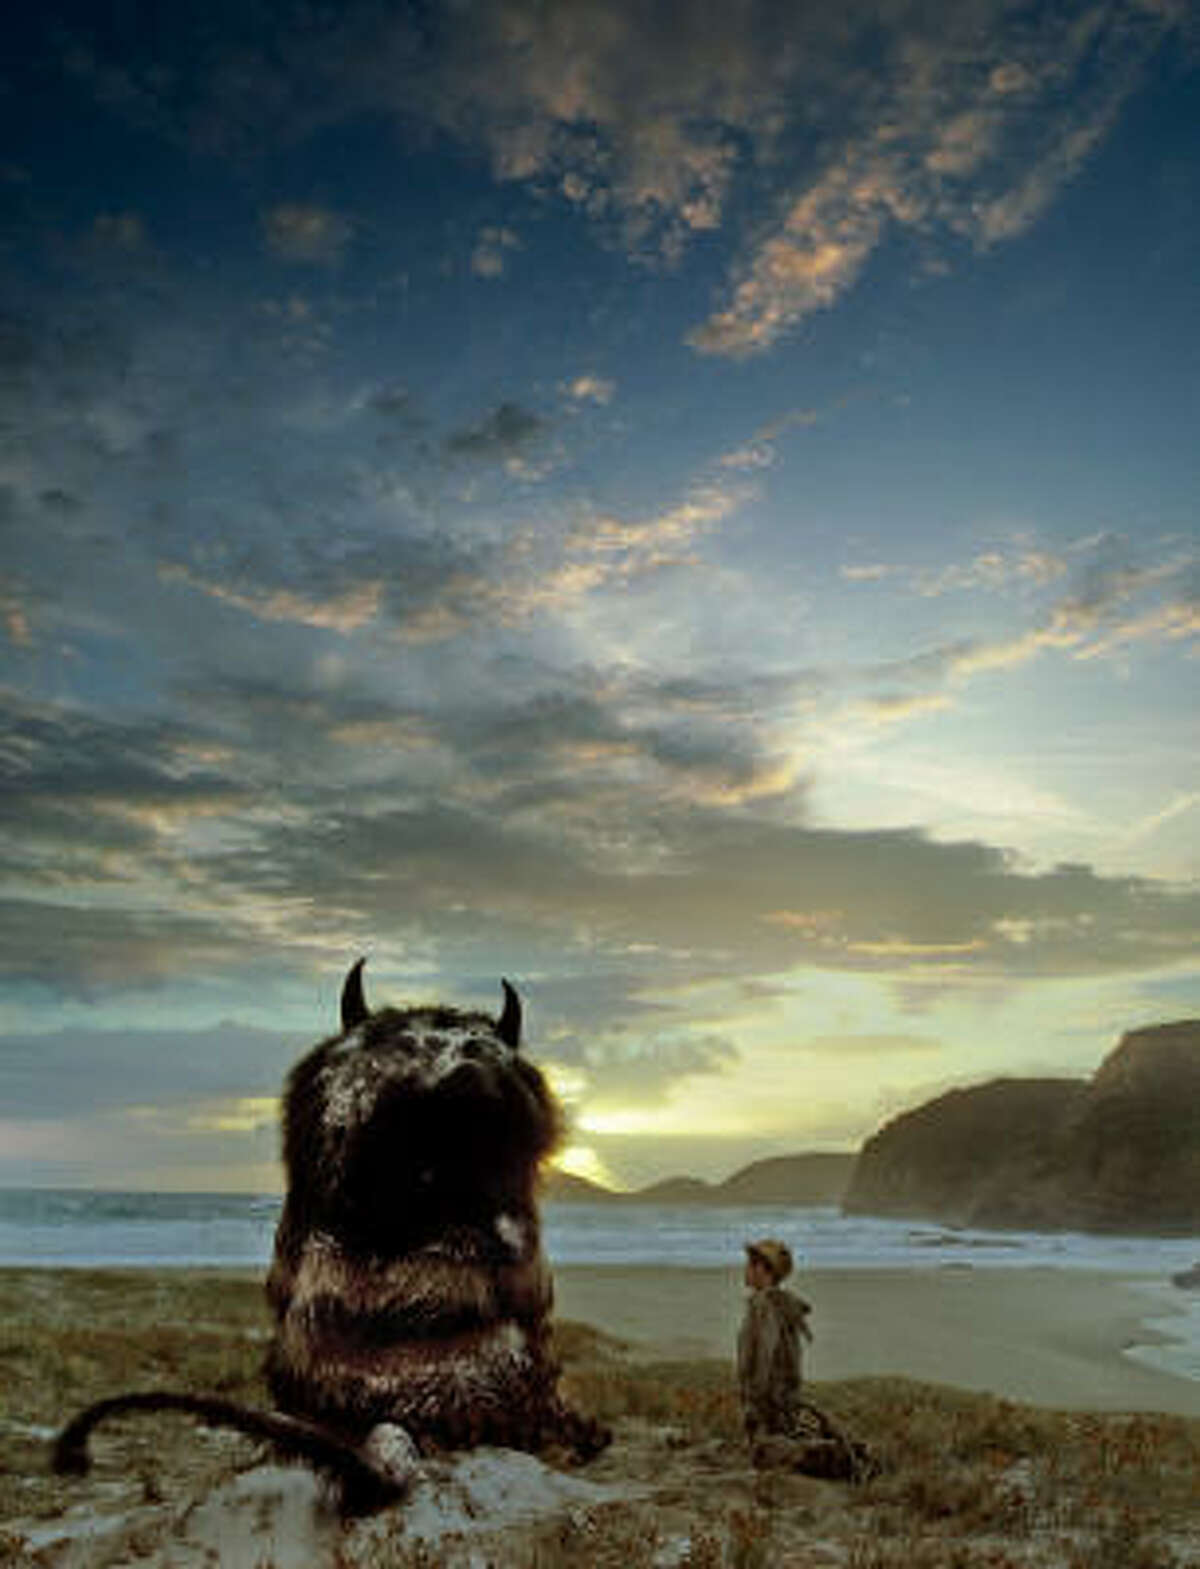 Where the Wild Things Are , $xxx million An adaptation of Maurice Sendak's classic children's story where Max, a disobedient little boy sent to bed without his supper, creates his own world -- a forest inhabited by ferocious wild creatures that crown Max as their ruler.